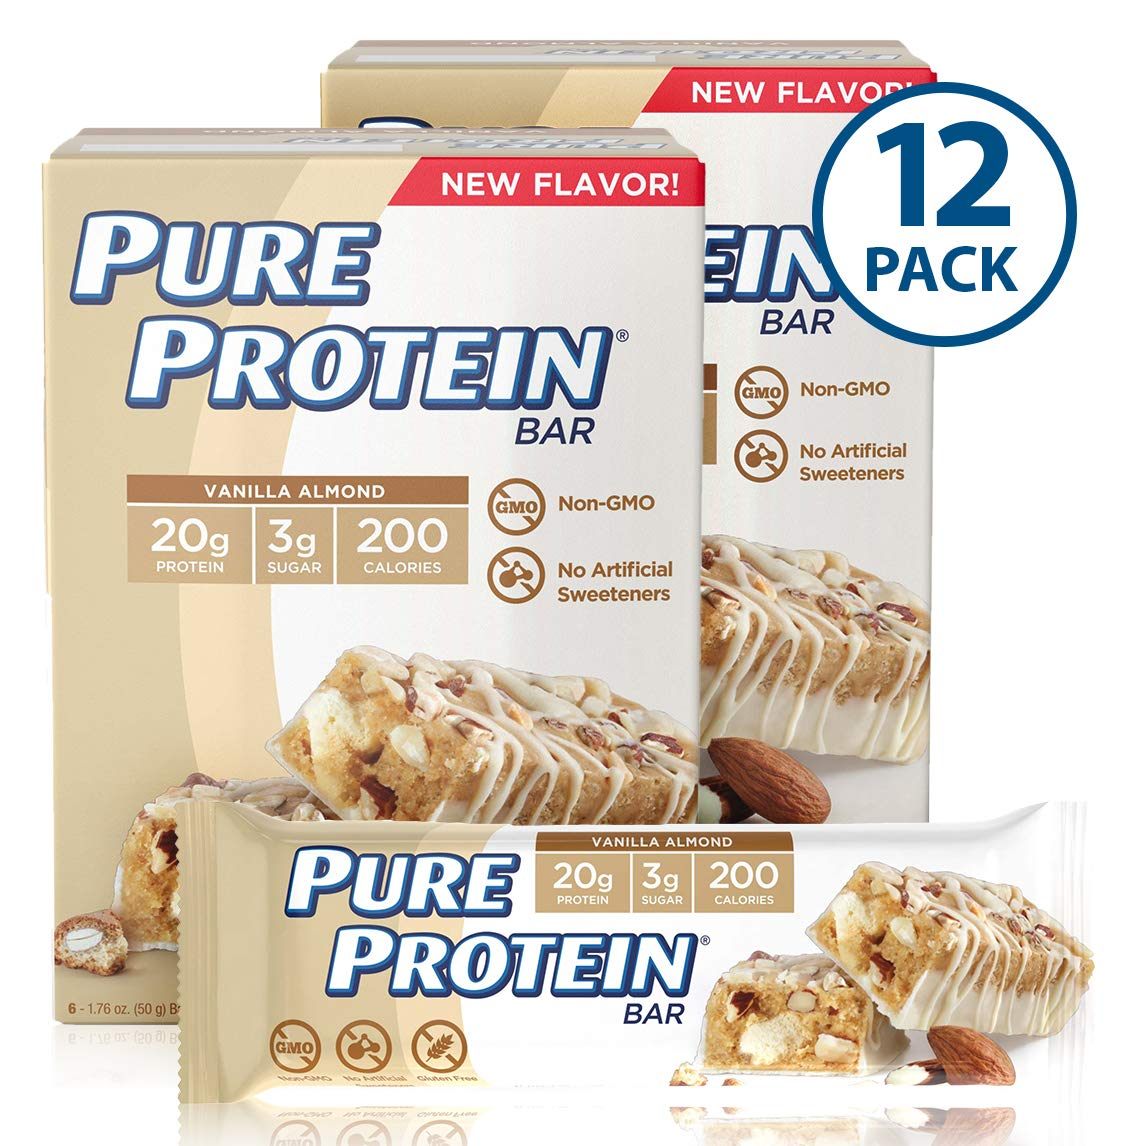 Pure Protein Bars, High Protein, Nutritious Snacks to Support Energy, Low Sugar, Gluten Free, Vanilla Almond, 1.76oz, 12 Pack by Pure Protein